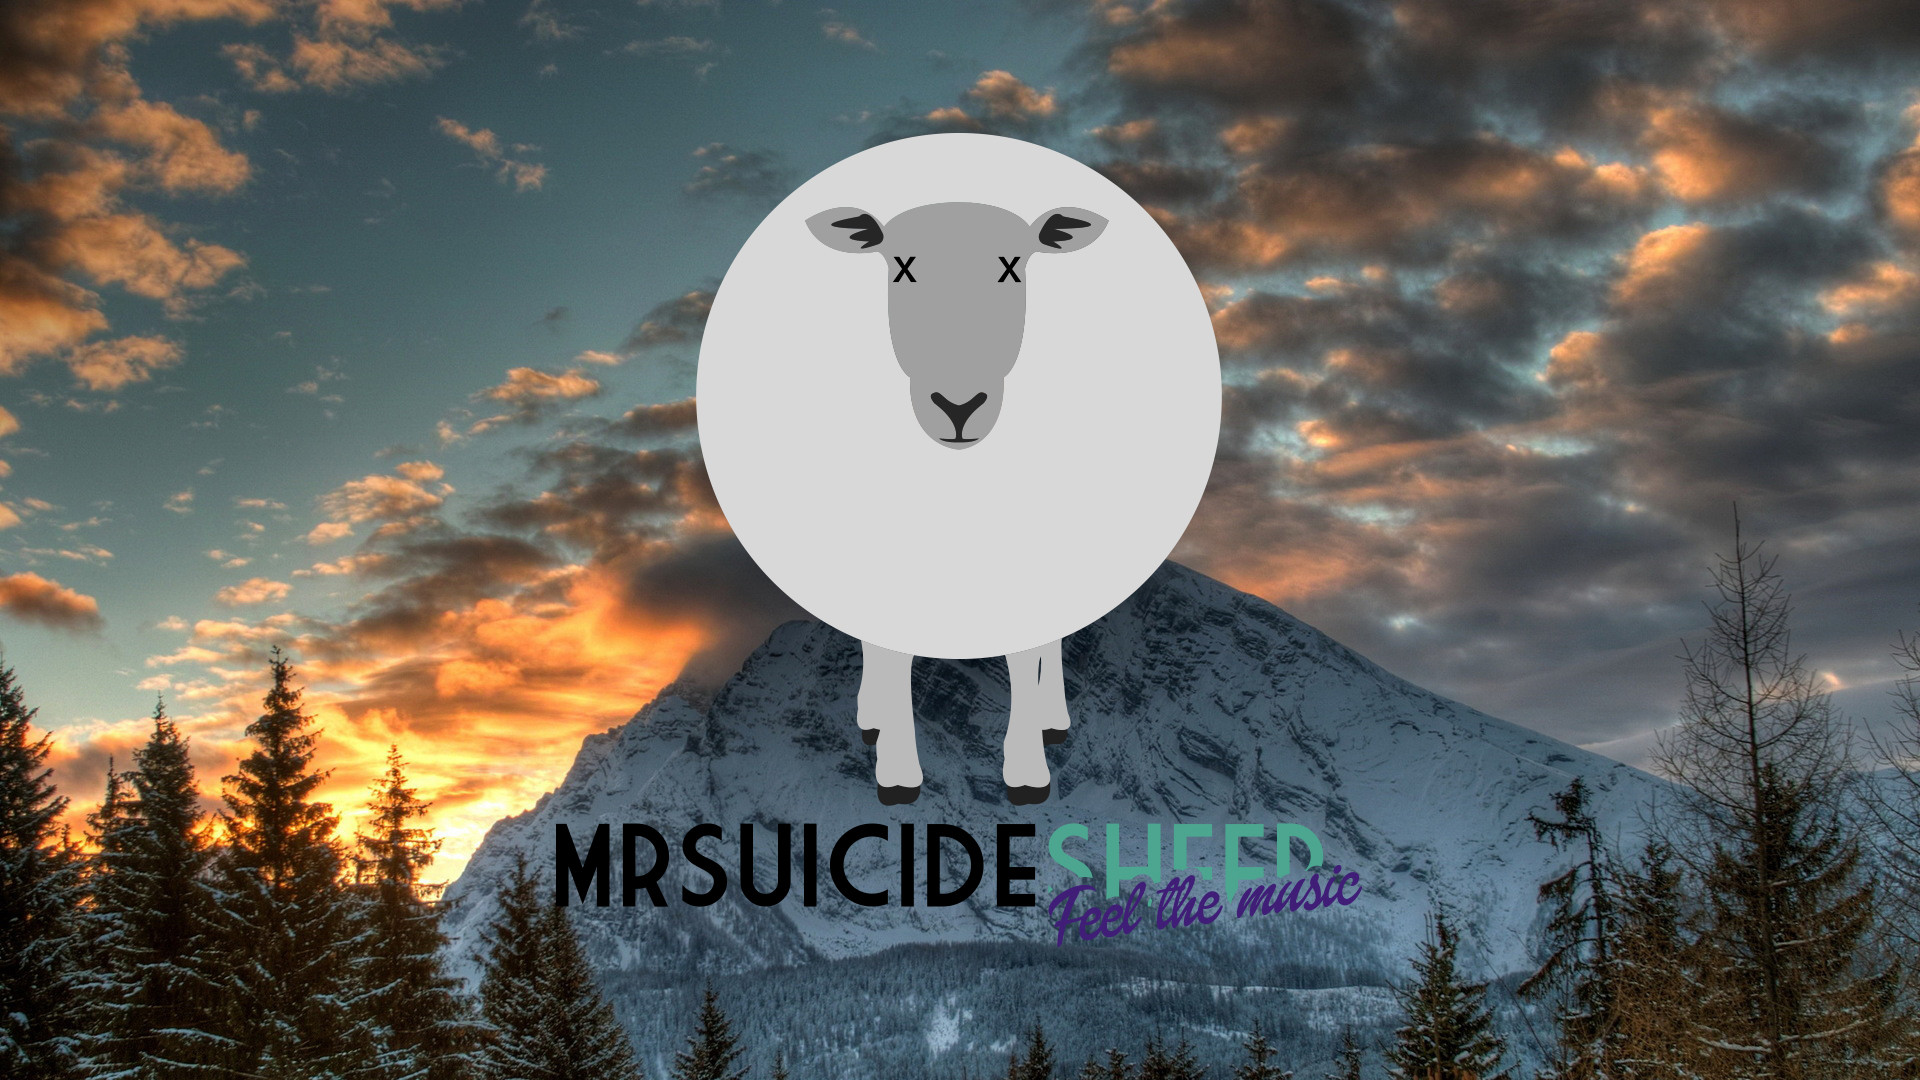 … Mr suicide Sheep Feel the music by TheTobbs